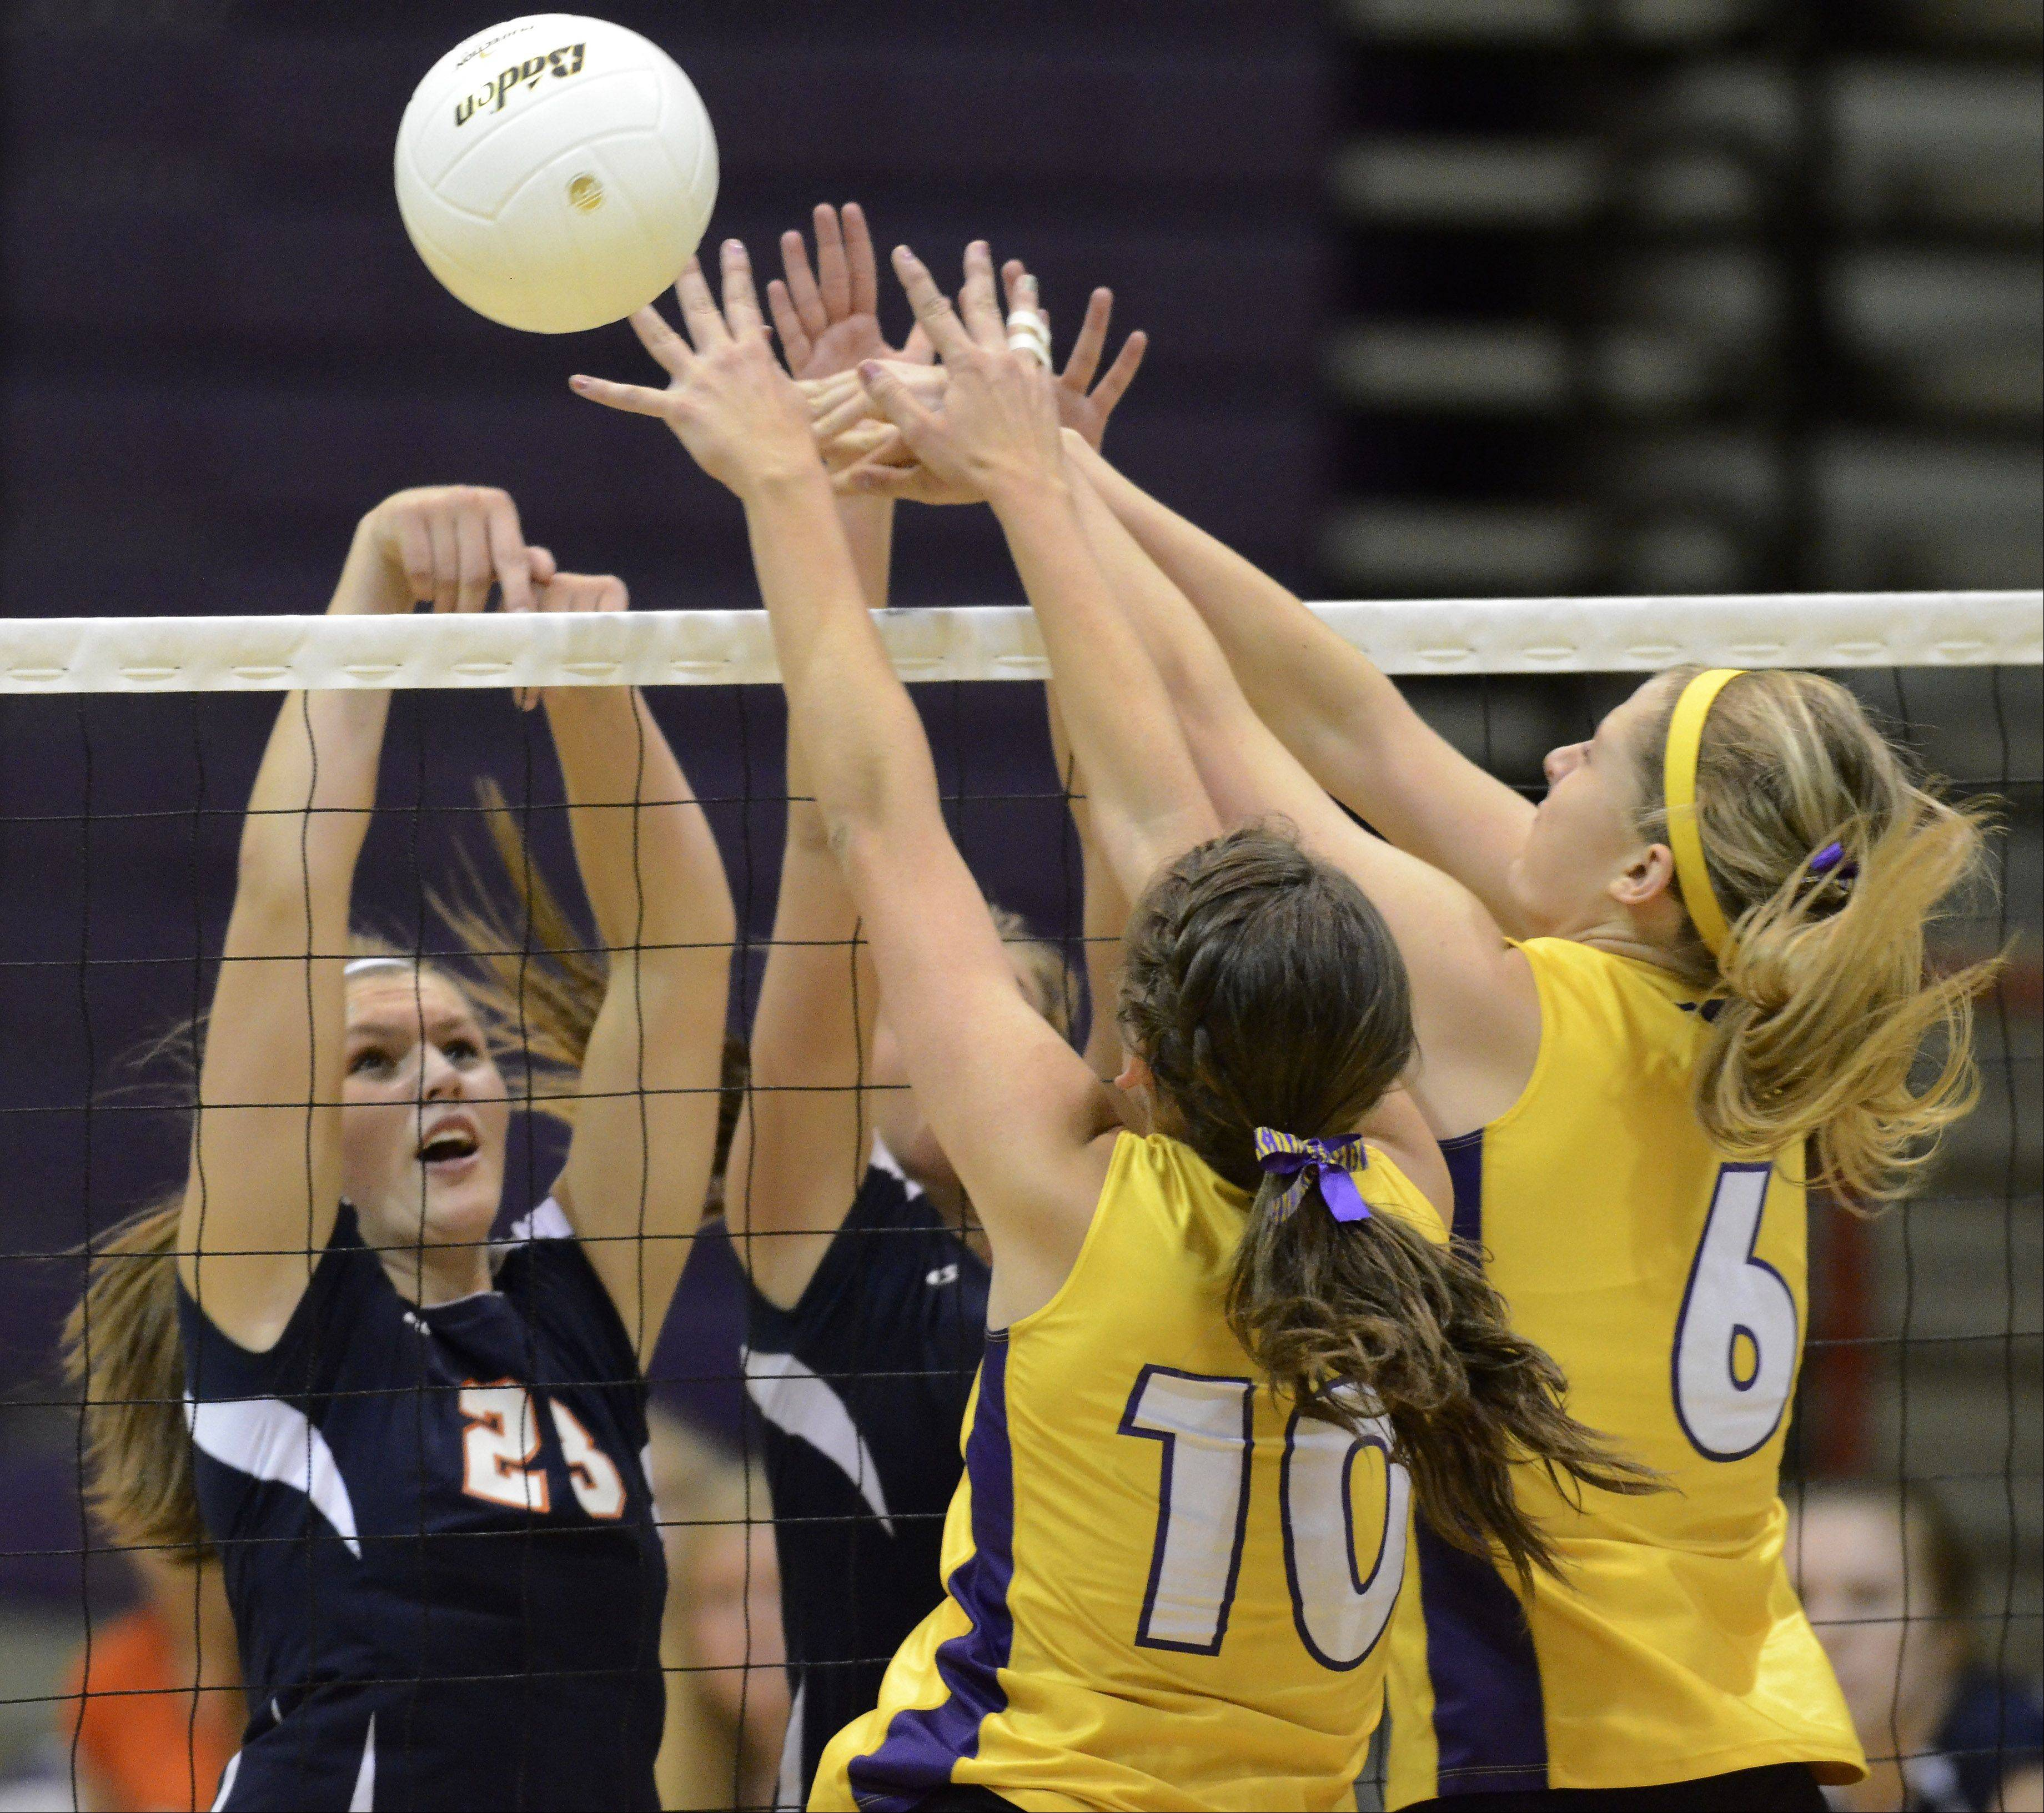 Buffalo Grove's Alyssa Mills, left, and Rolling Meadows' Rachel Mickey and Jenny Vliet, right, converge at the net during Thursday's game.